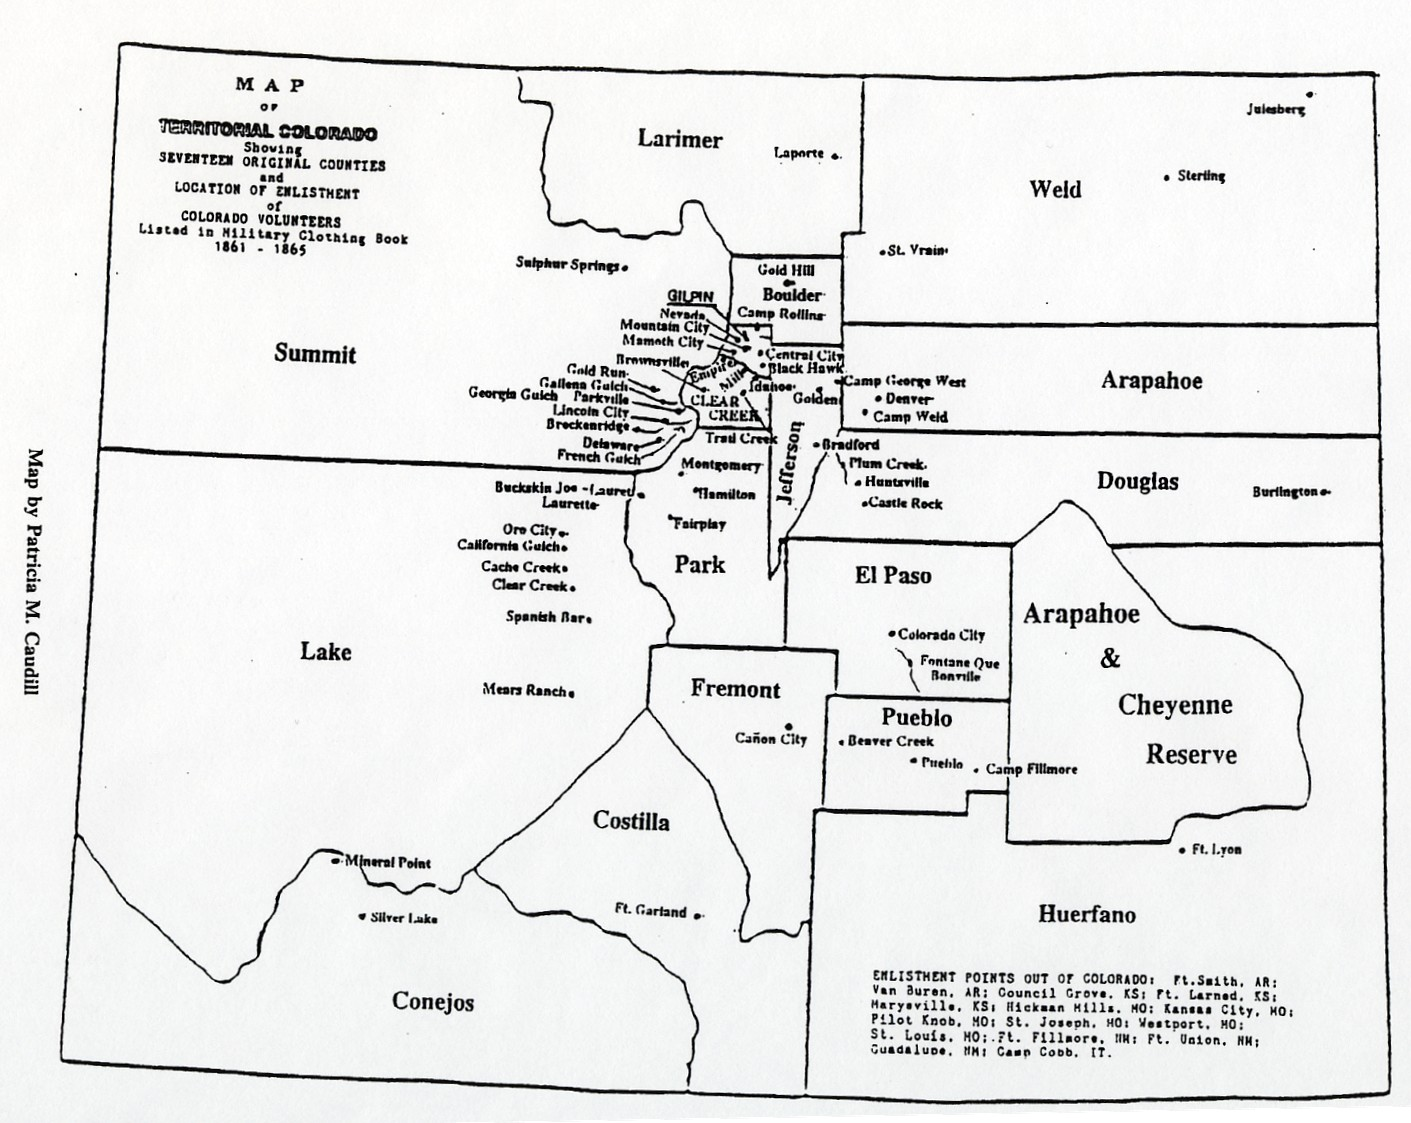 Colorado Territory Map 1861-1865